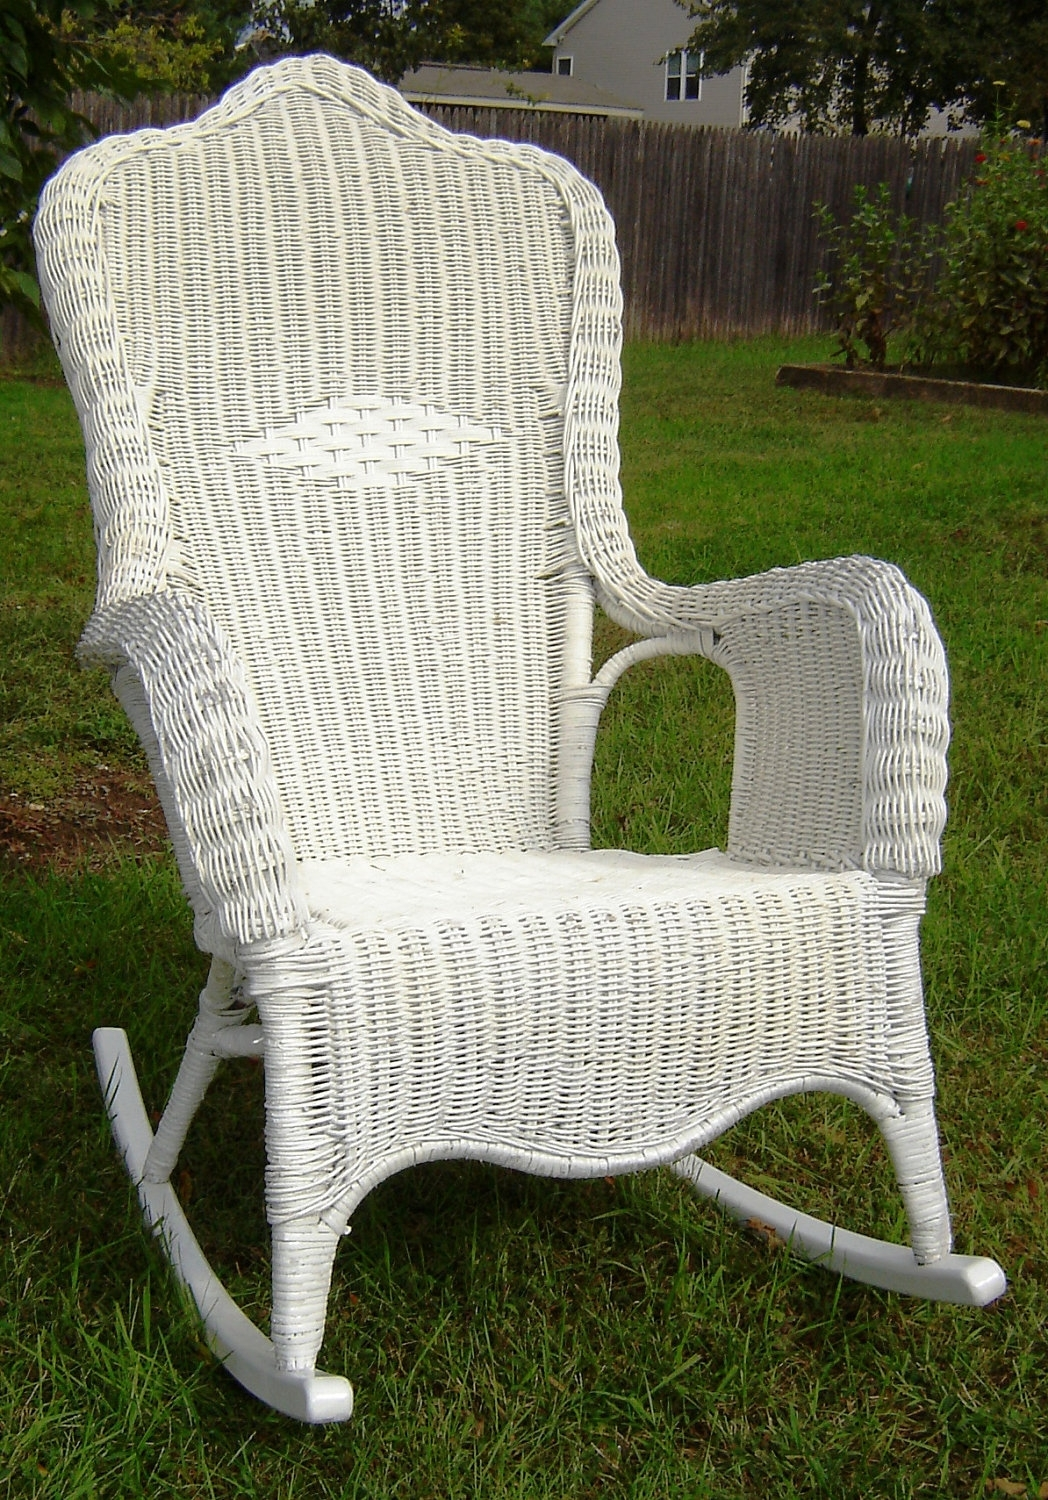 Preferred 55 White Wicker Rocking Chair, White Wicker Rocking Chair Throughout White Wicker Rocking Chair For Nursery (View 11 of 15)